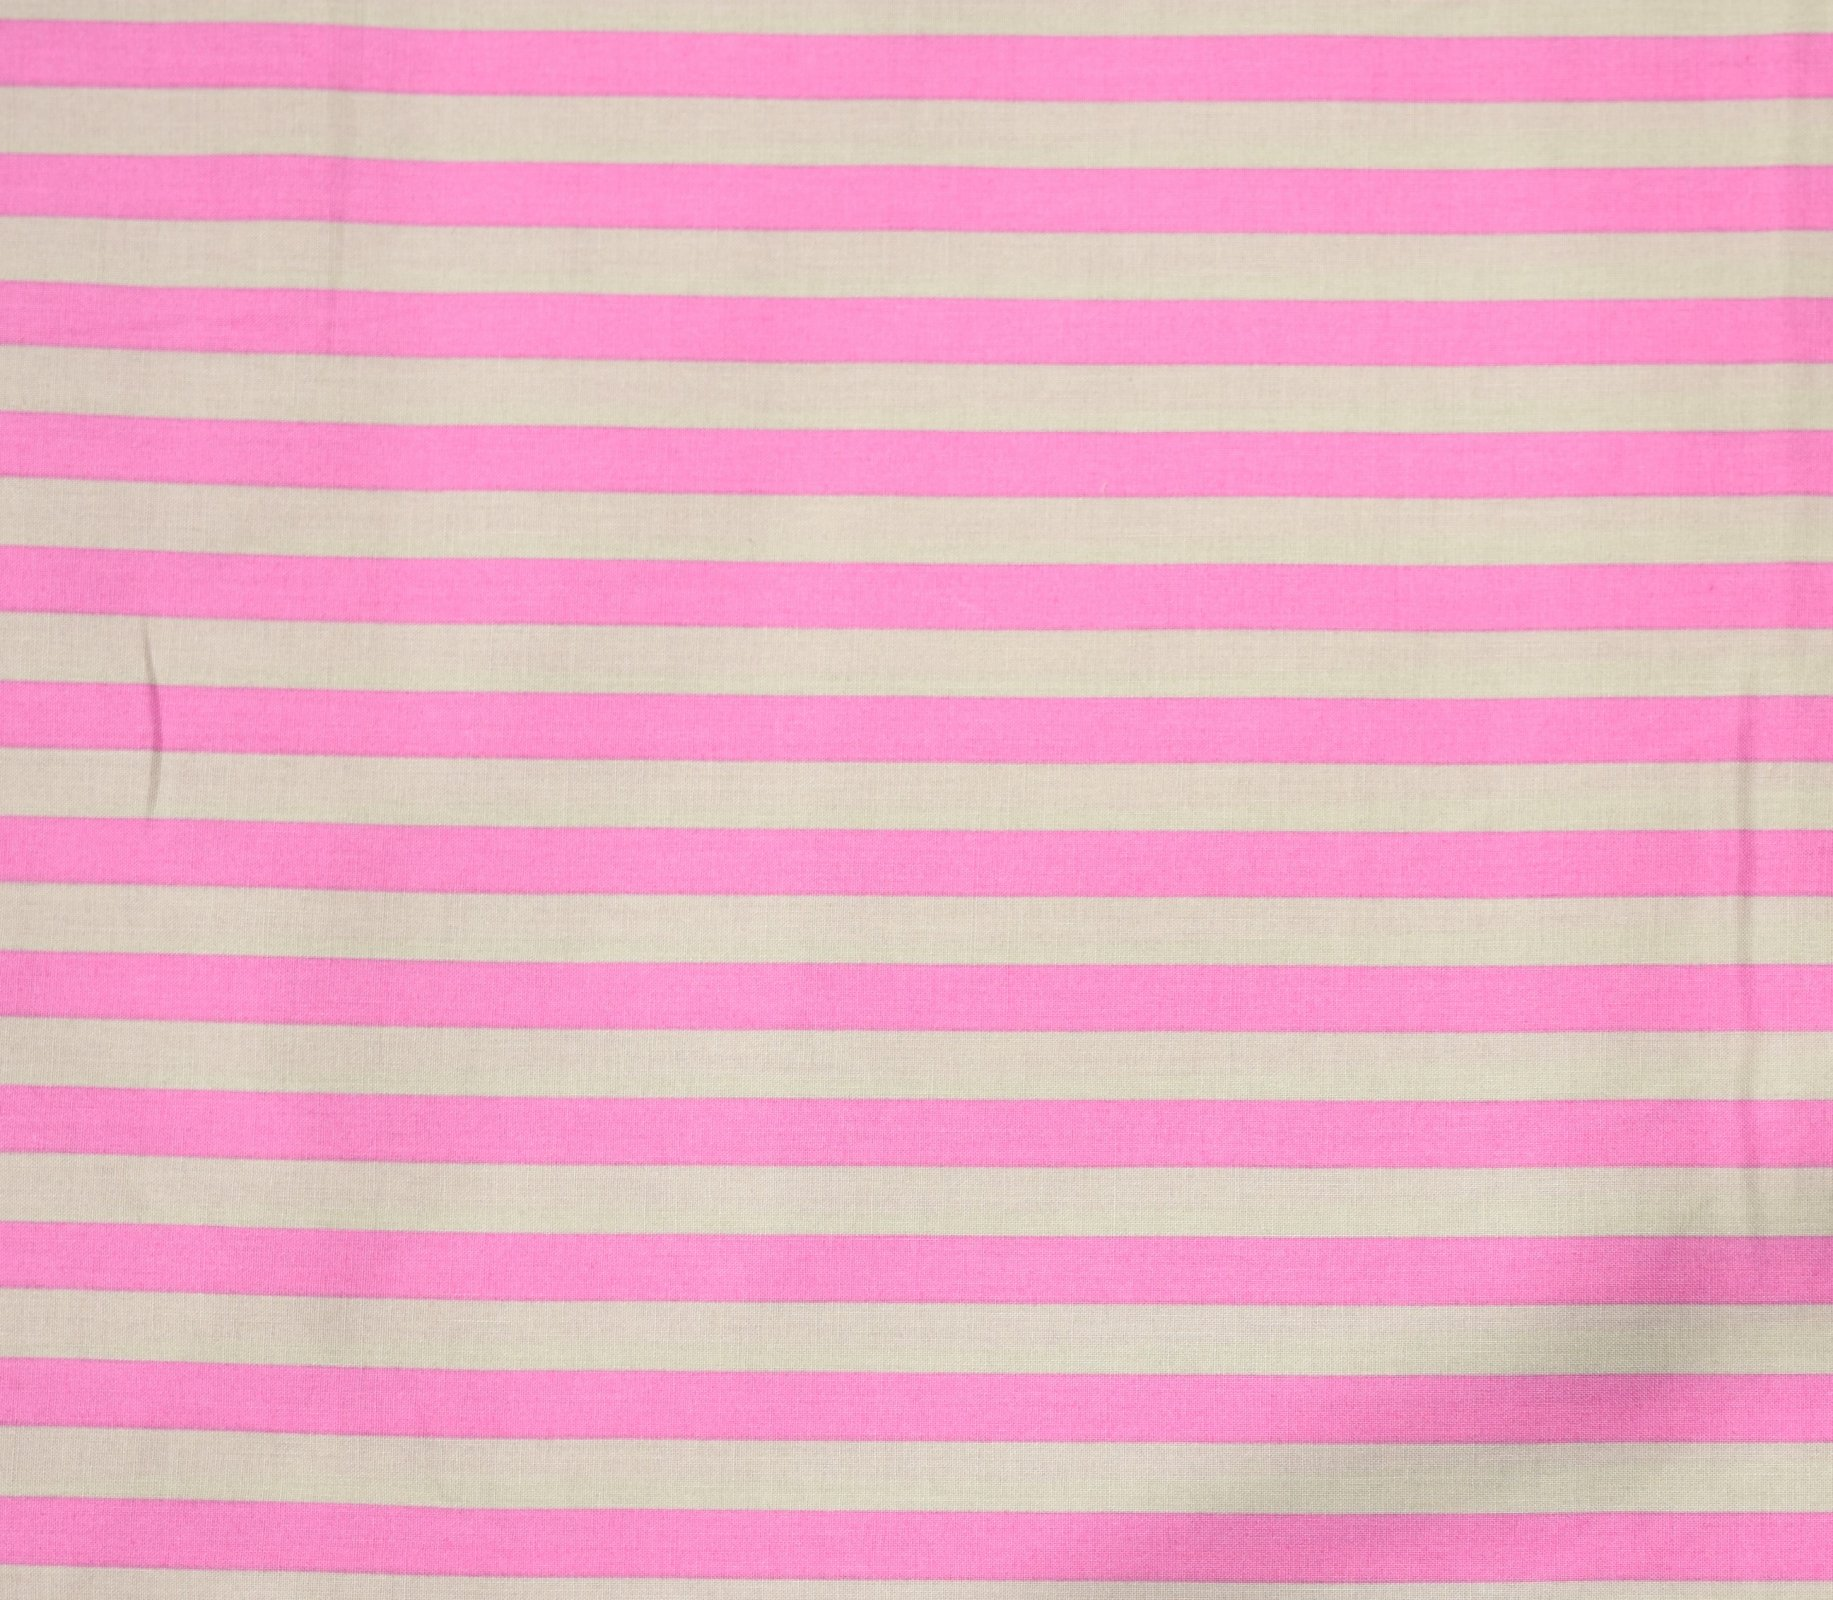 Japanese Fabric - Color Cocktails - Thick Stripe - Soft Grey/Pink